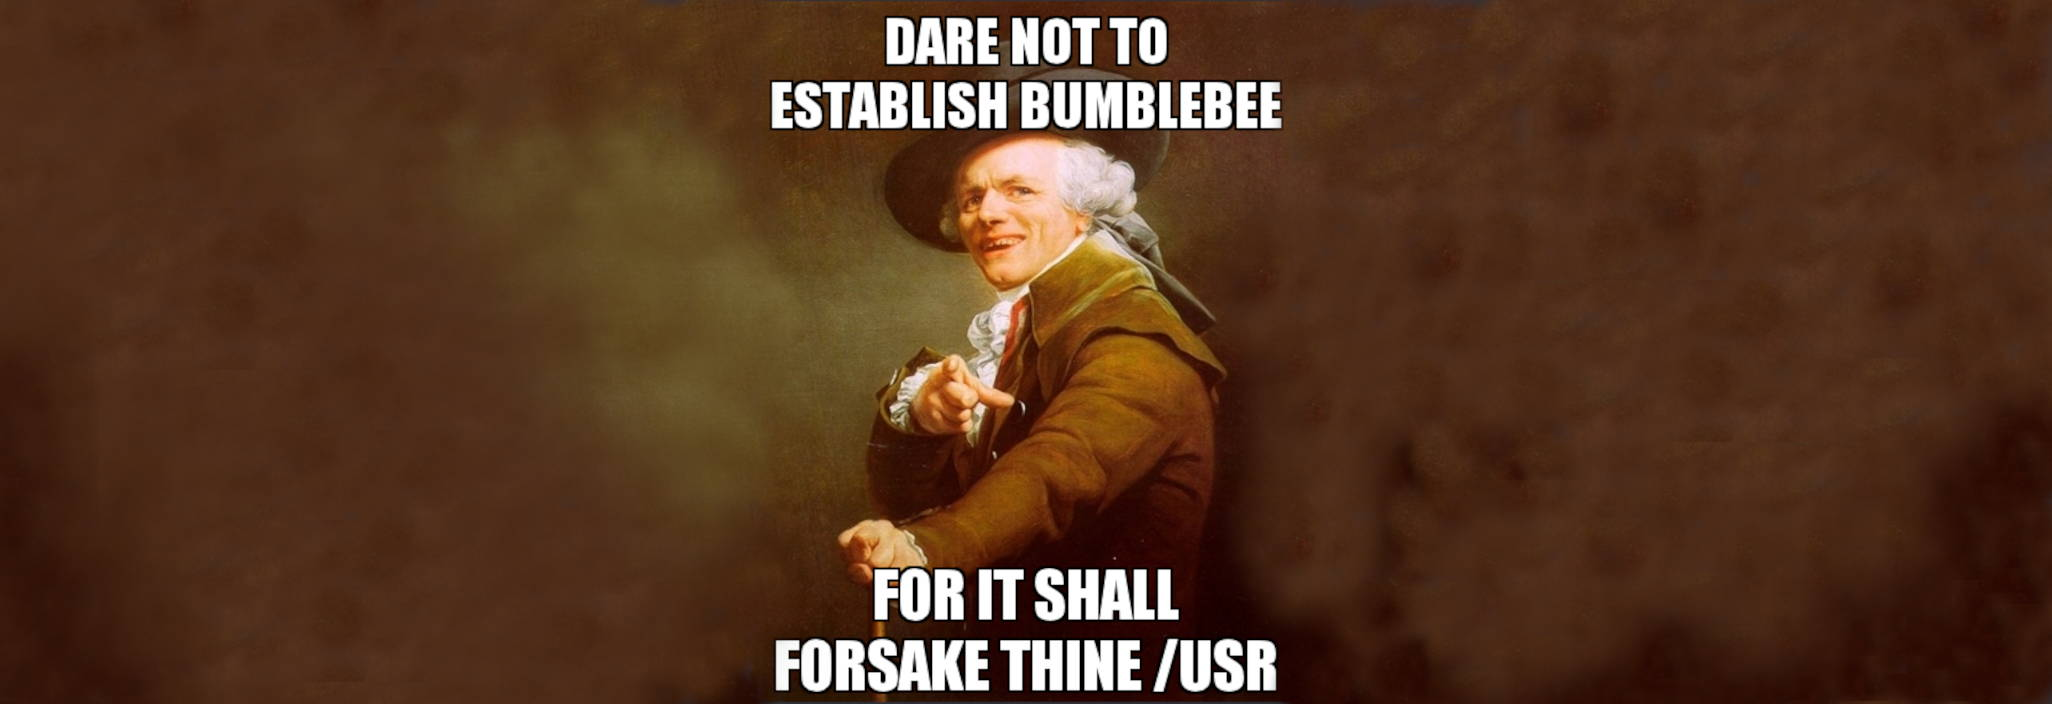 "An Reannissance meme with an evil-looking man saying ""thou shalt not establish bumblebee"""